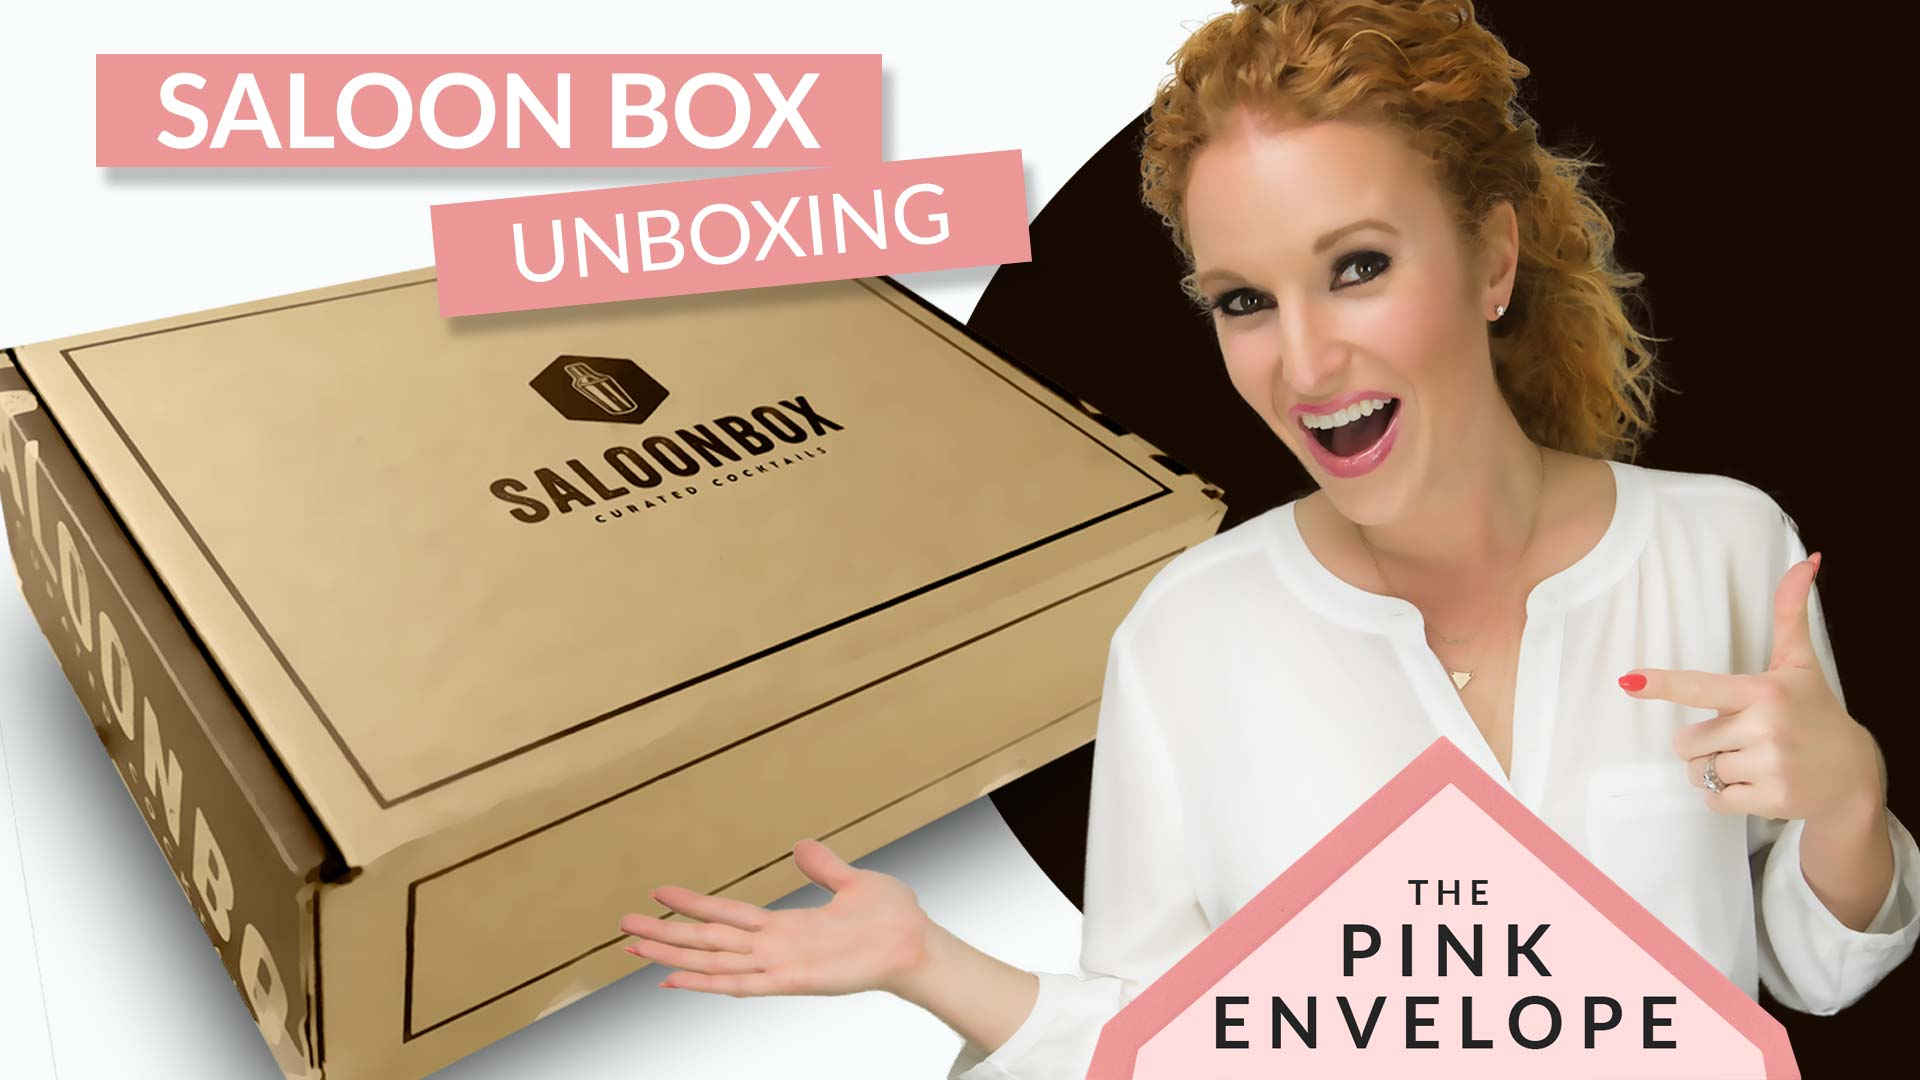 Cocktail Delivery Service – Saloon Box Review